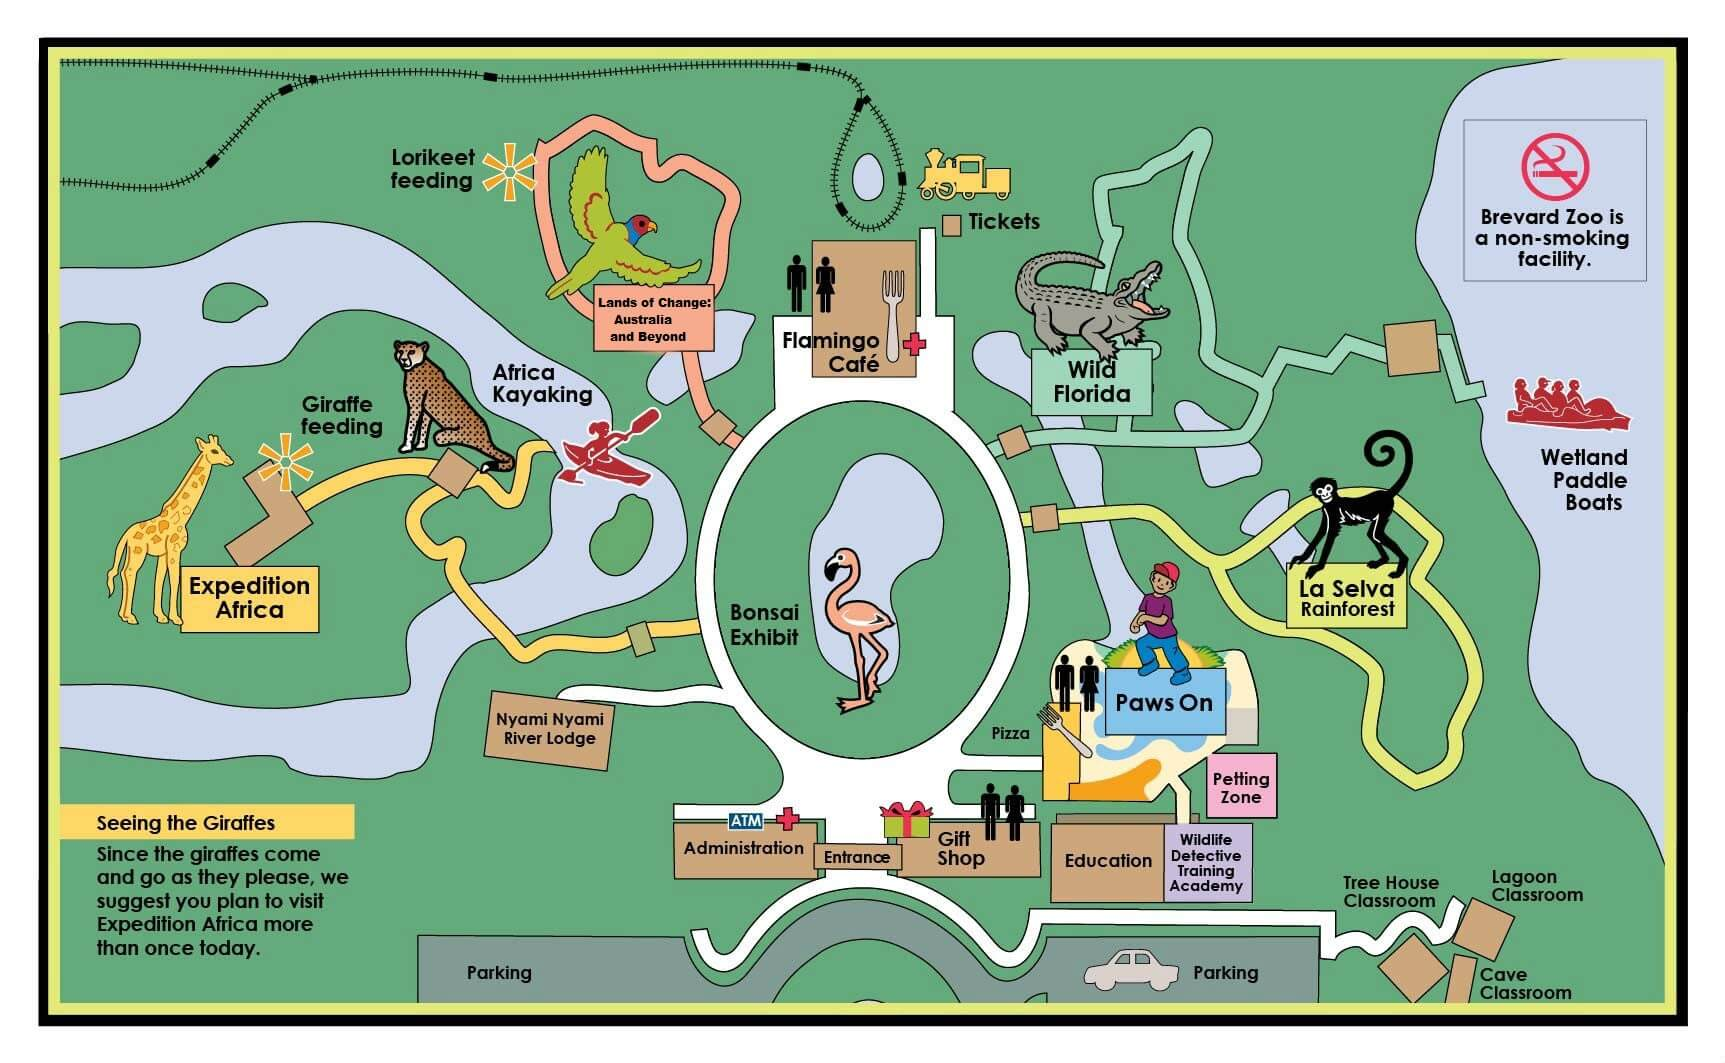 FAQs   Brevard Zoo Zoo Maps Of A Student on map of a home, map of a hospital, map of a convention center, map of an art gallery, map of a community, map of a park, map of arboretum, map of hotels, map of a church, map of a museum, map of a playground, map of a dog, map of a farm, map of a racetrack, map of a monkey, map of sports facilities, map of amusement parks, map of a theater, map of bike trails, map of houses,